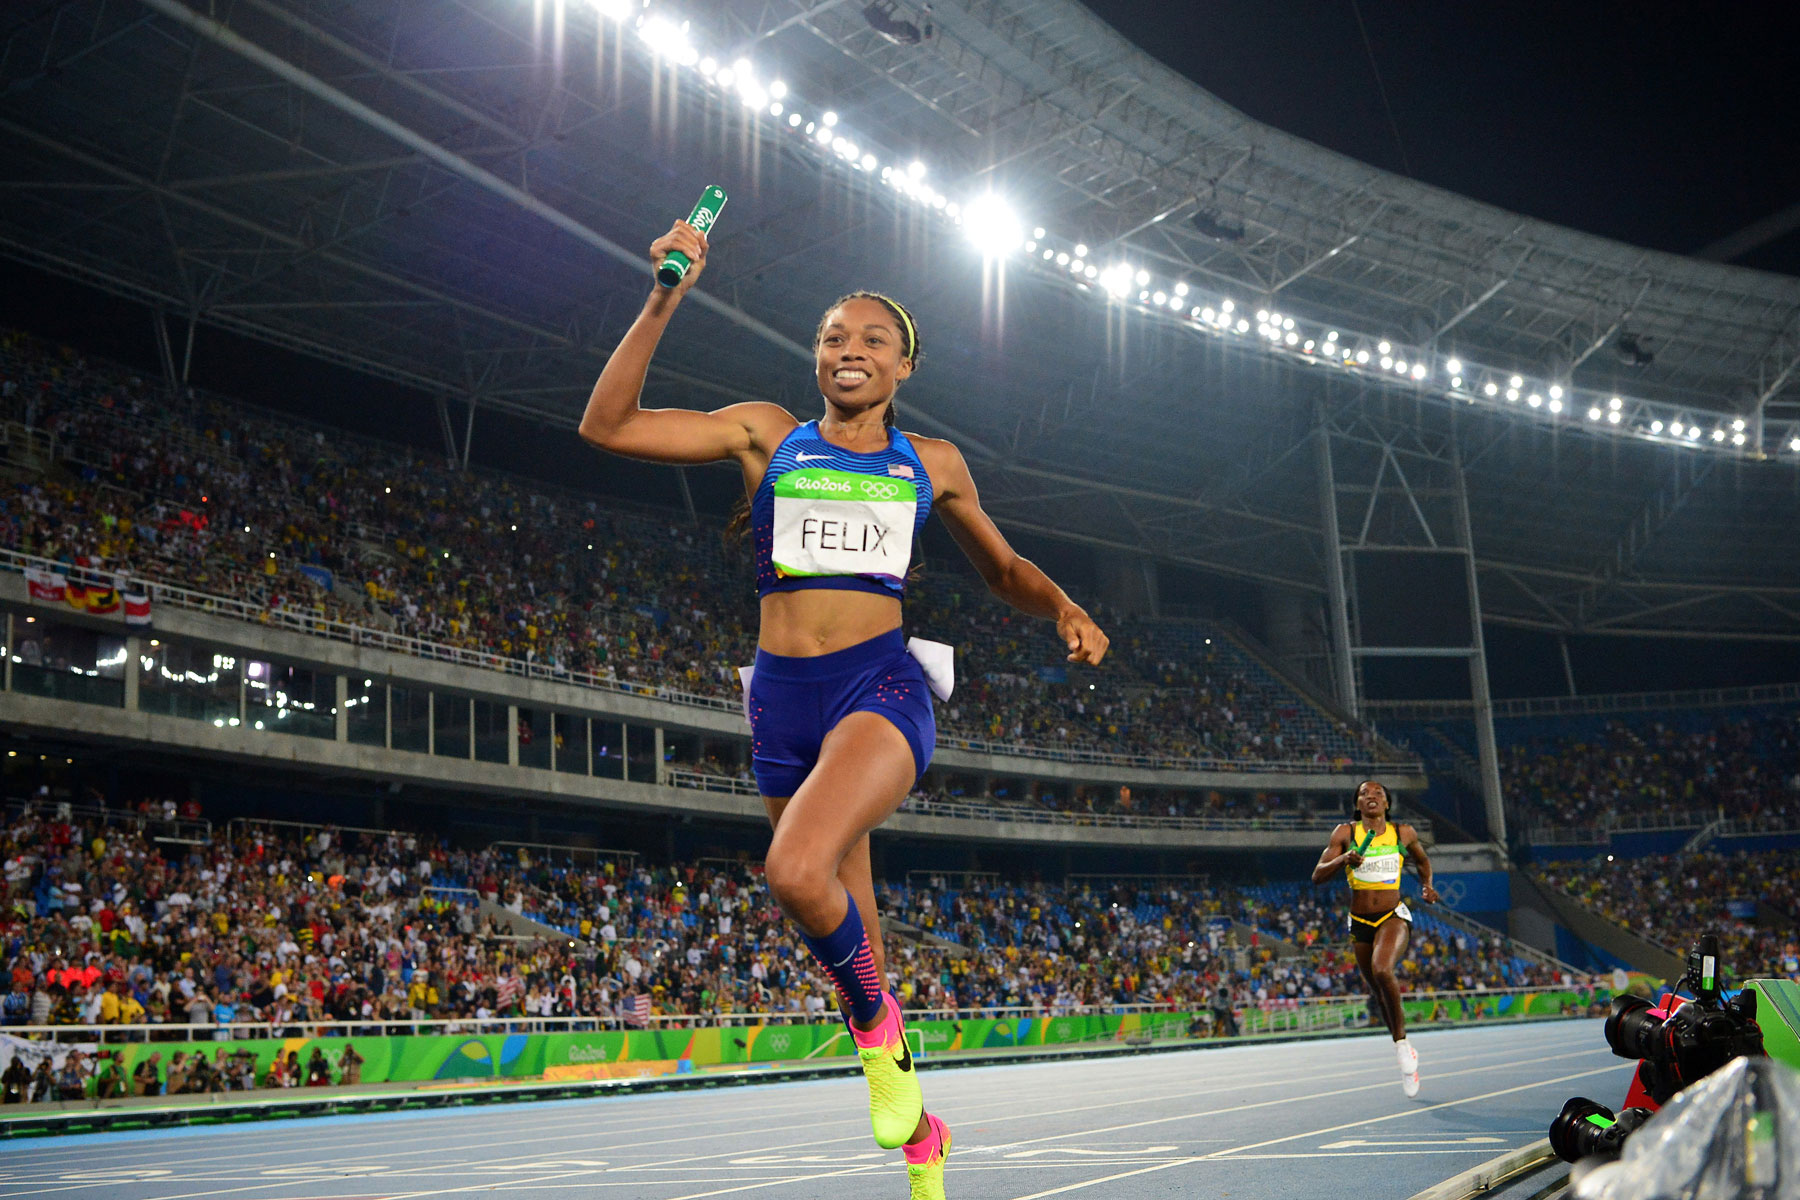 Allyson Felix running at Olympics